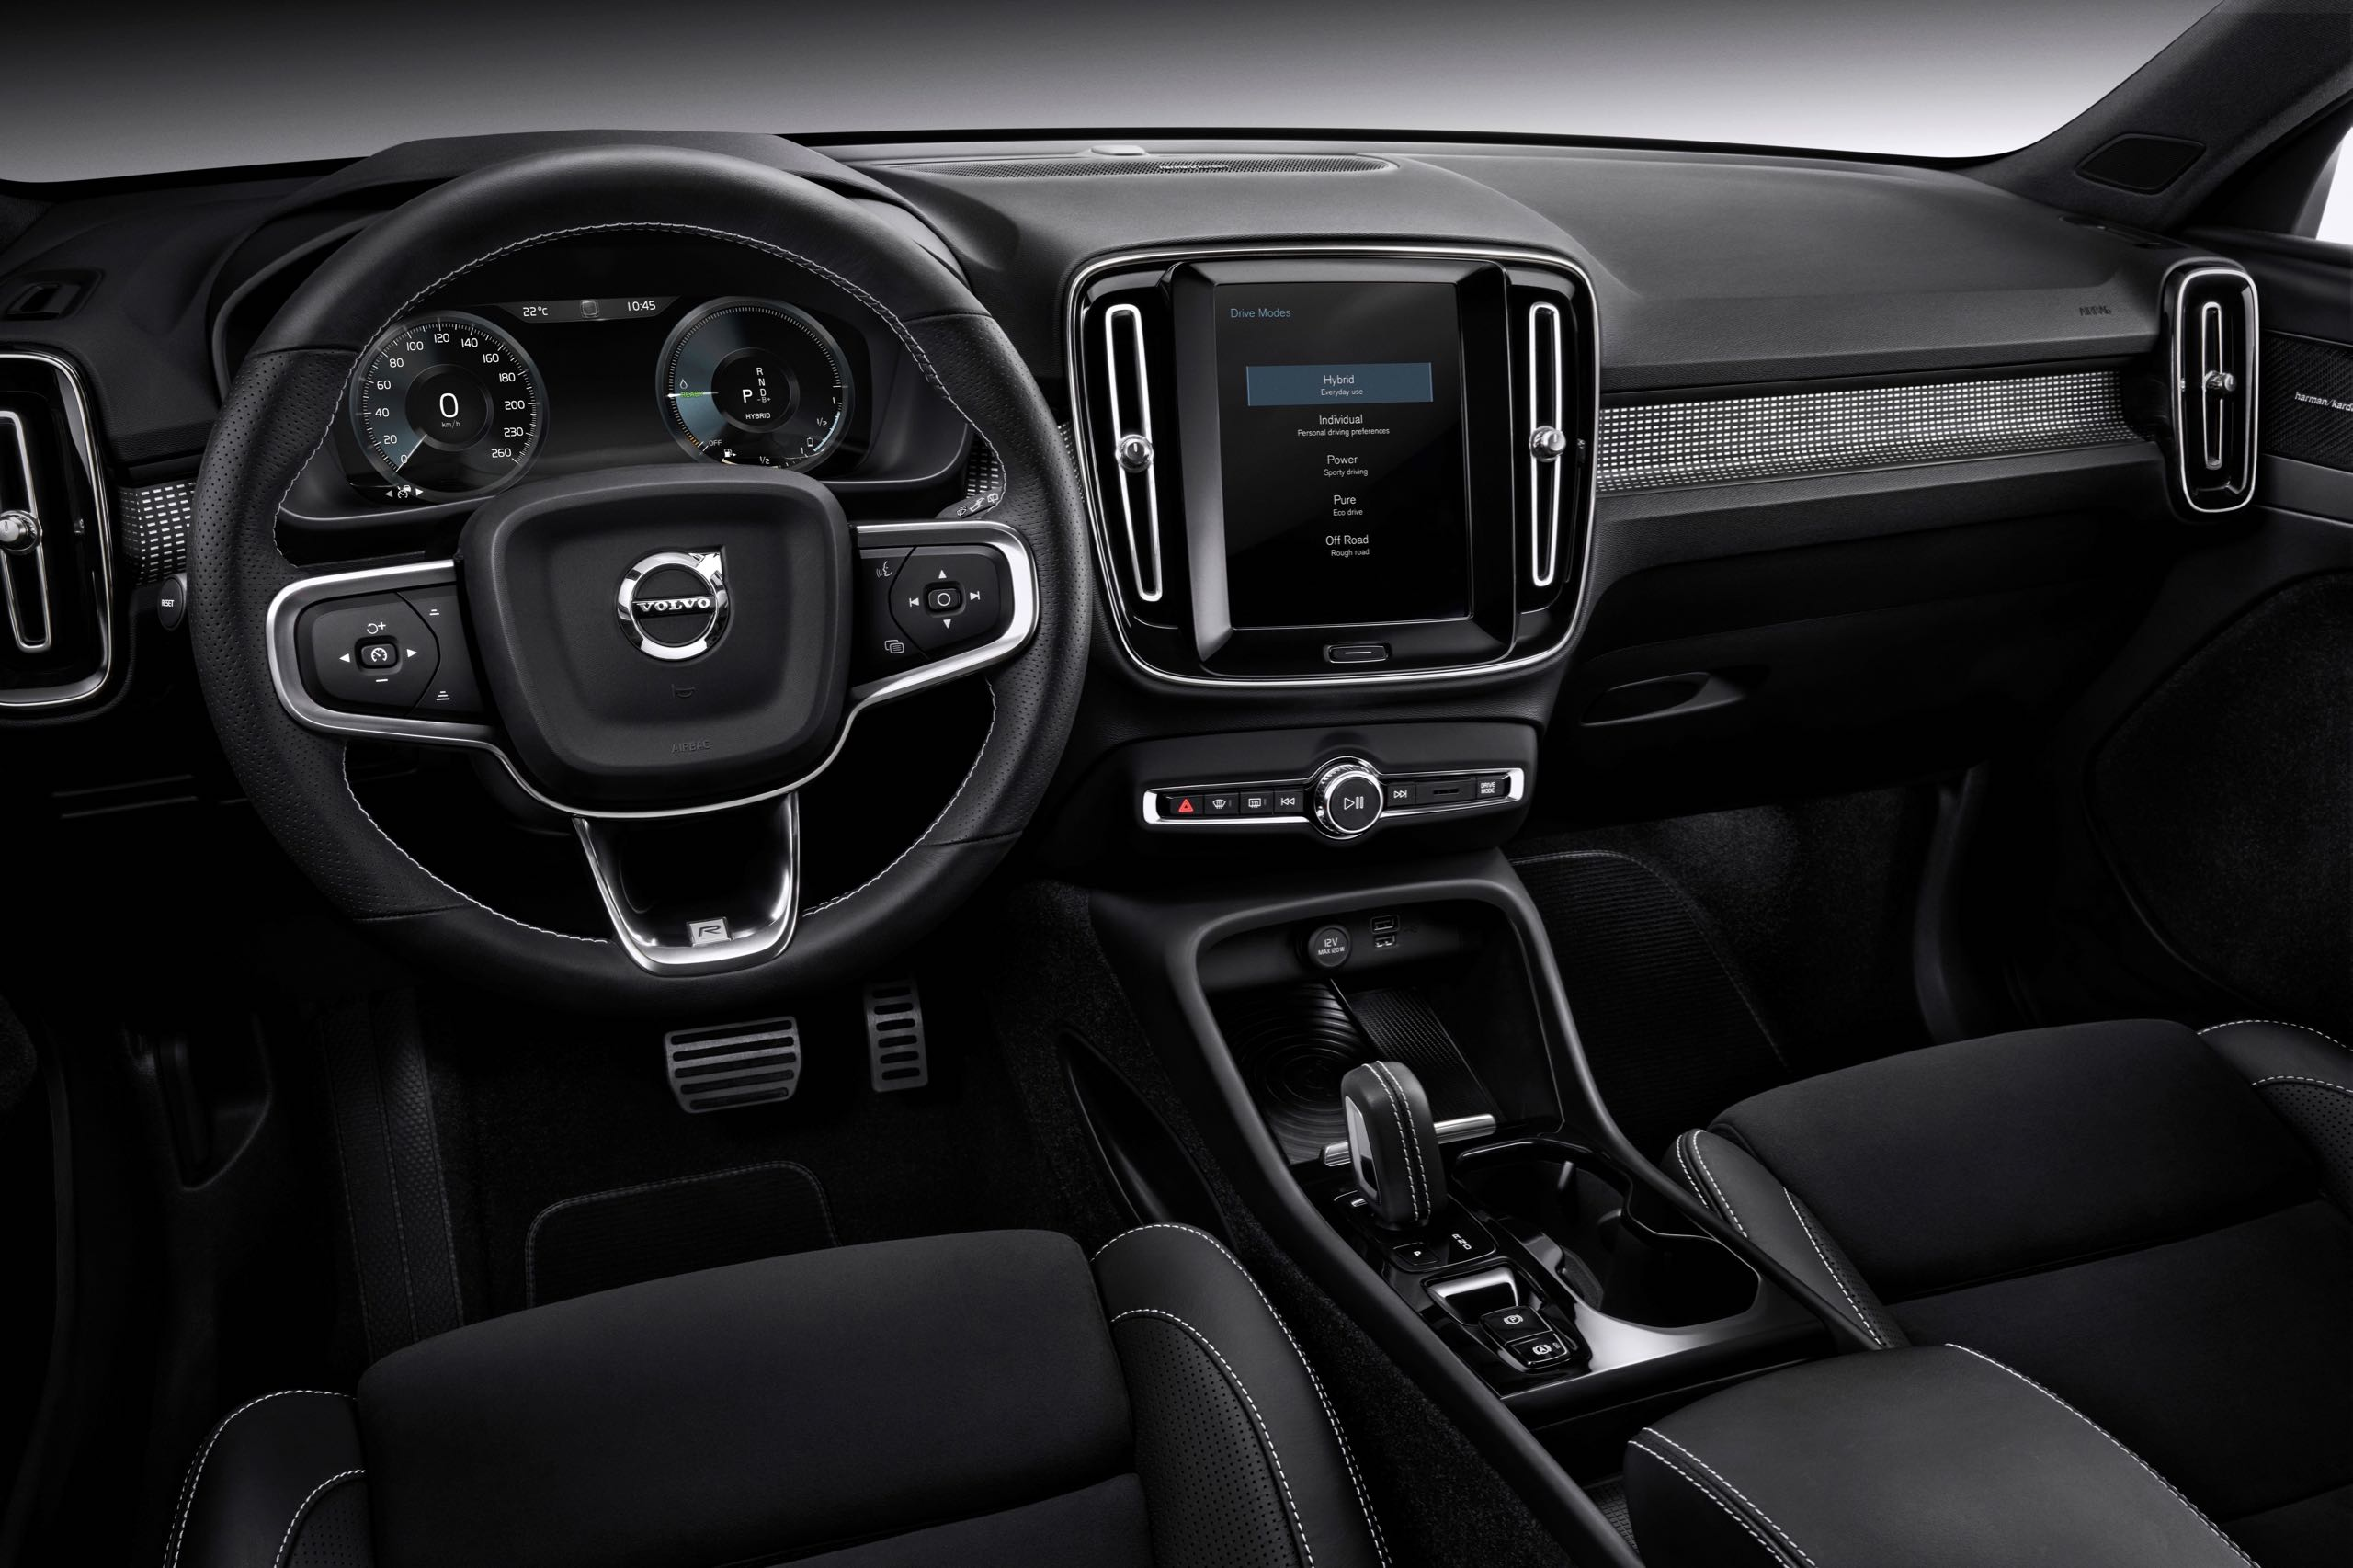 New Volvo XC40 T5 Plug In Hybrid -  2018, 2018 New XC40, Detail, Electrification, Images, Interior, New XC40, Studio, Technology